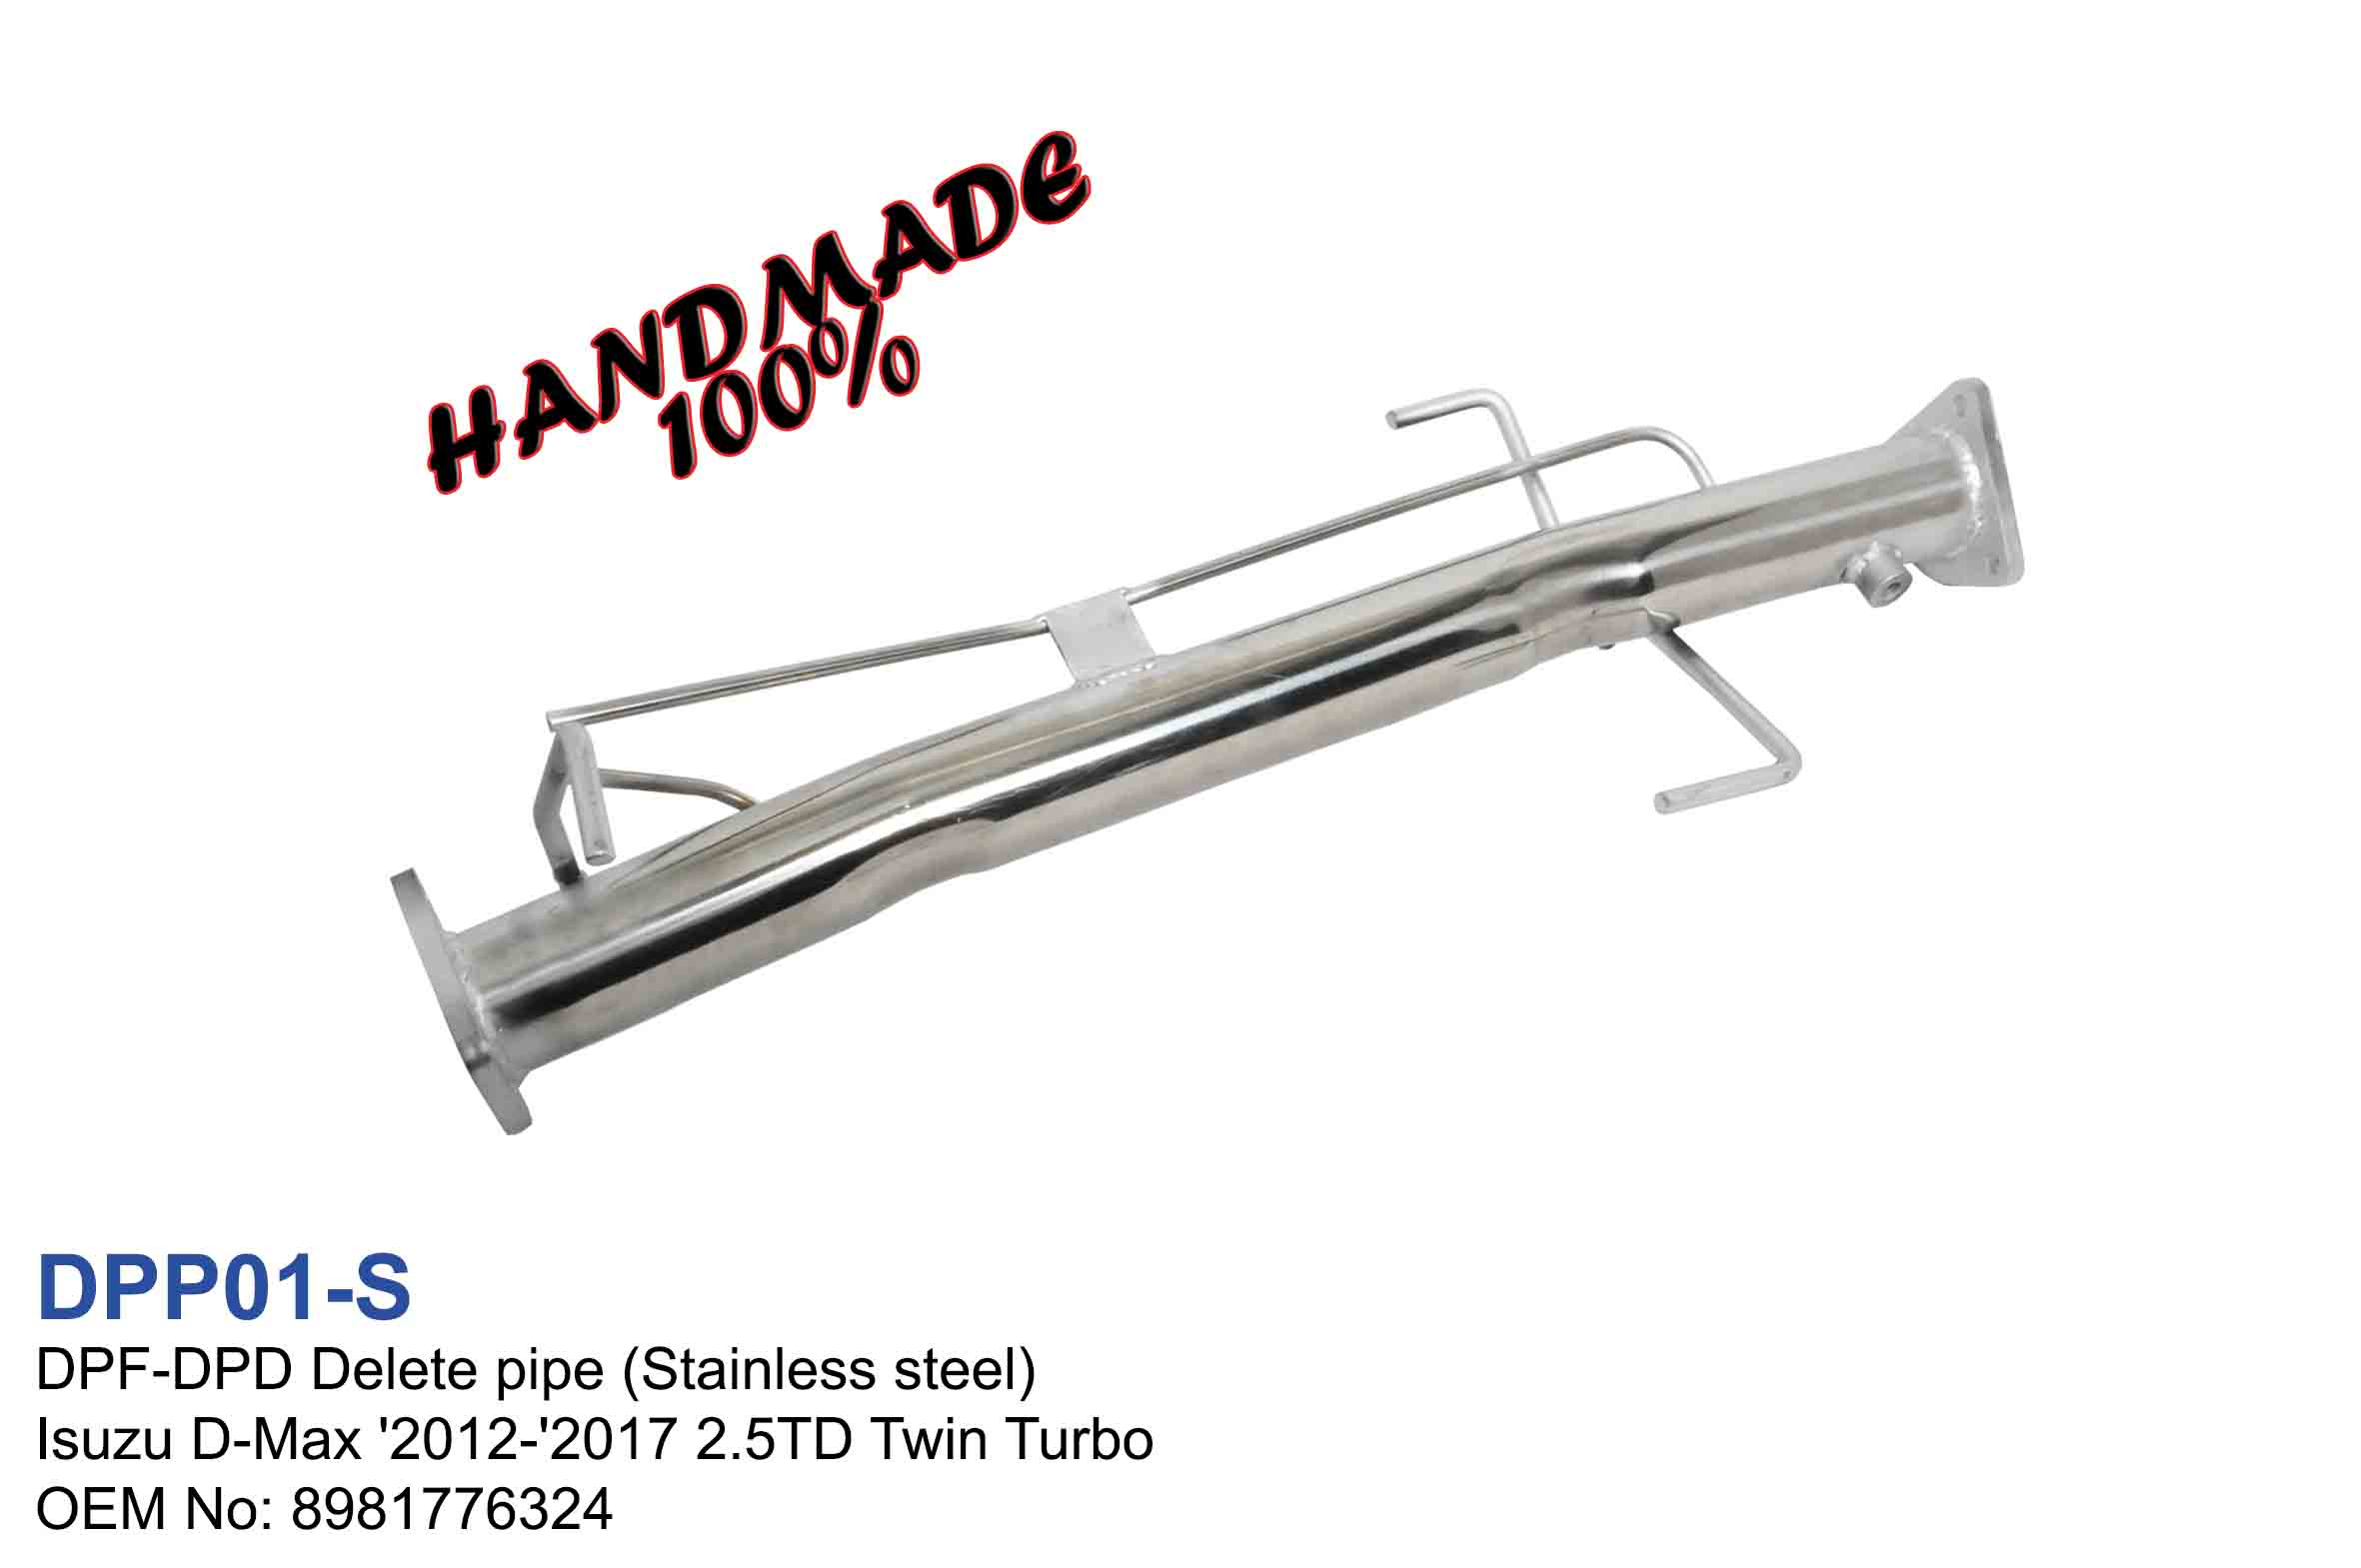 DPF-DPD Delete pipe Stainless steel for Isuzu D-Max '2012